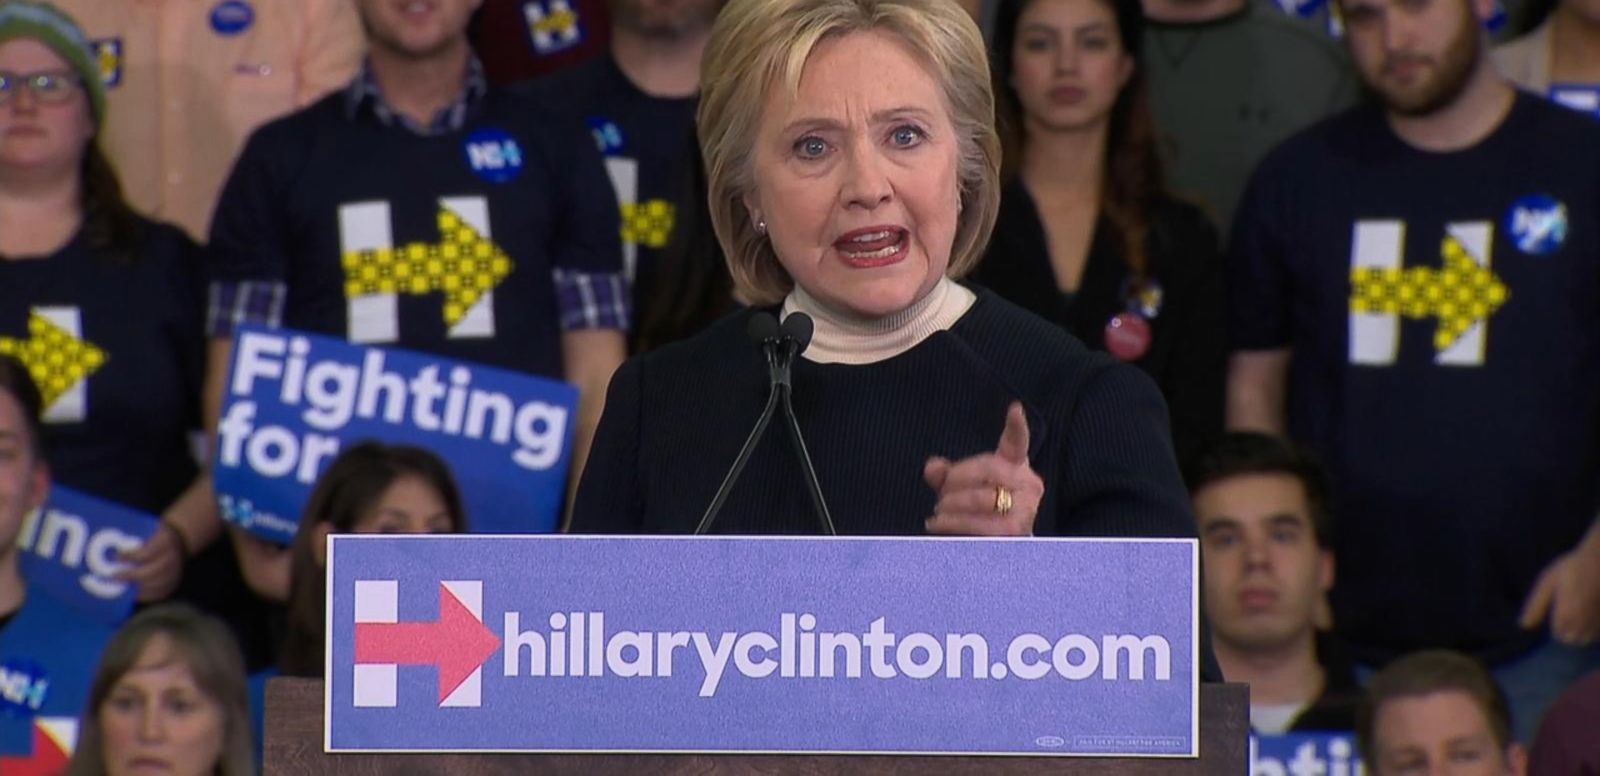 VIDEO: Hillary Clinton's Concession Speech in New Hampshire